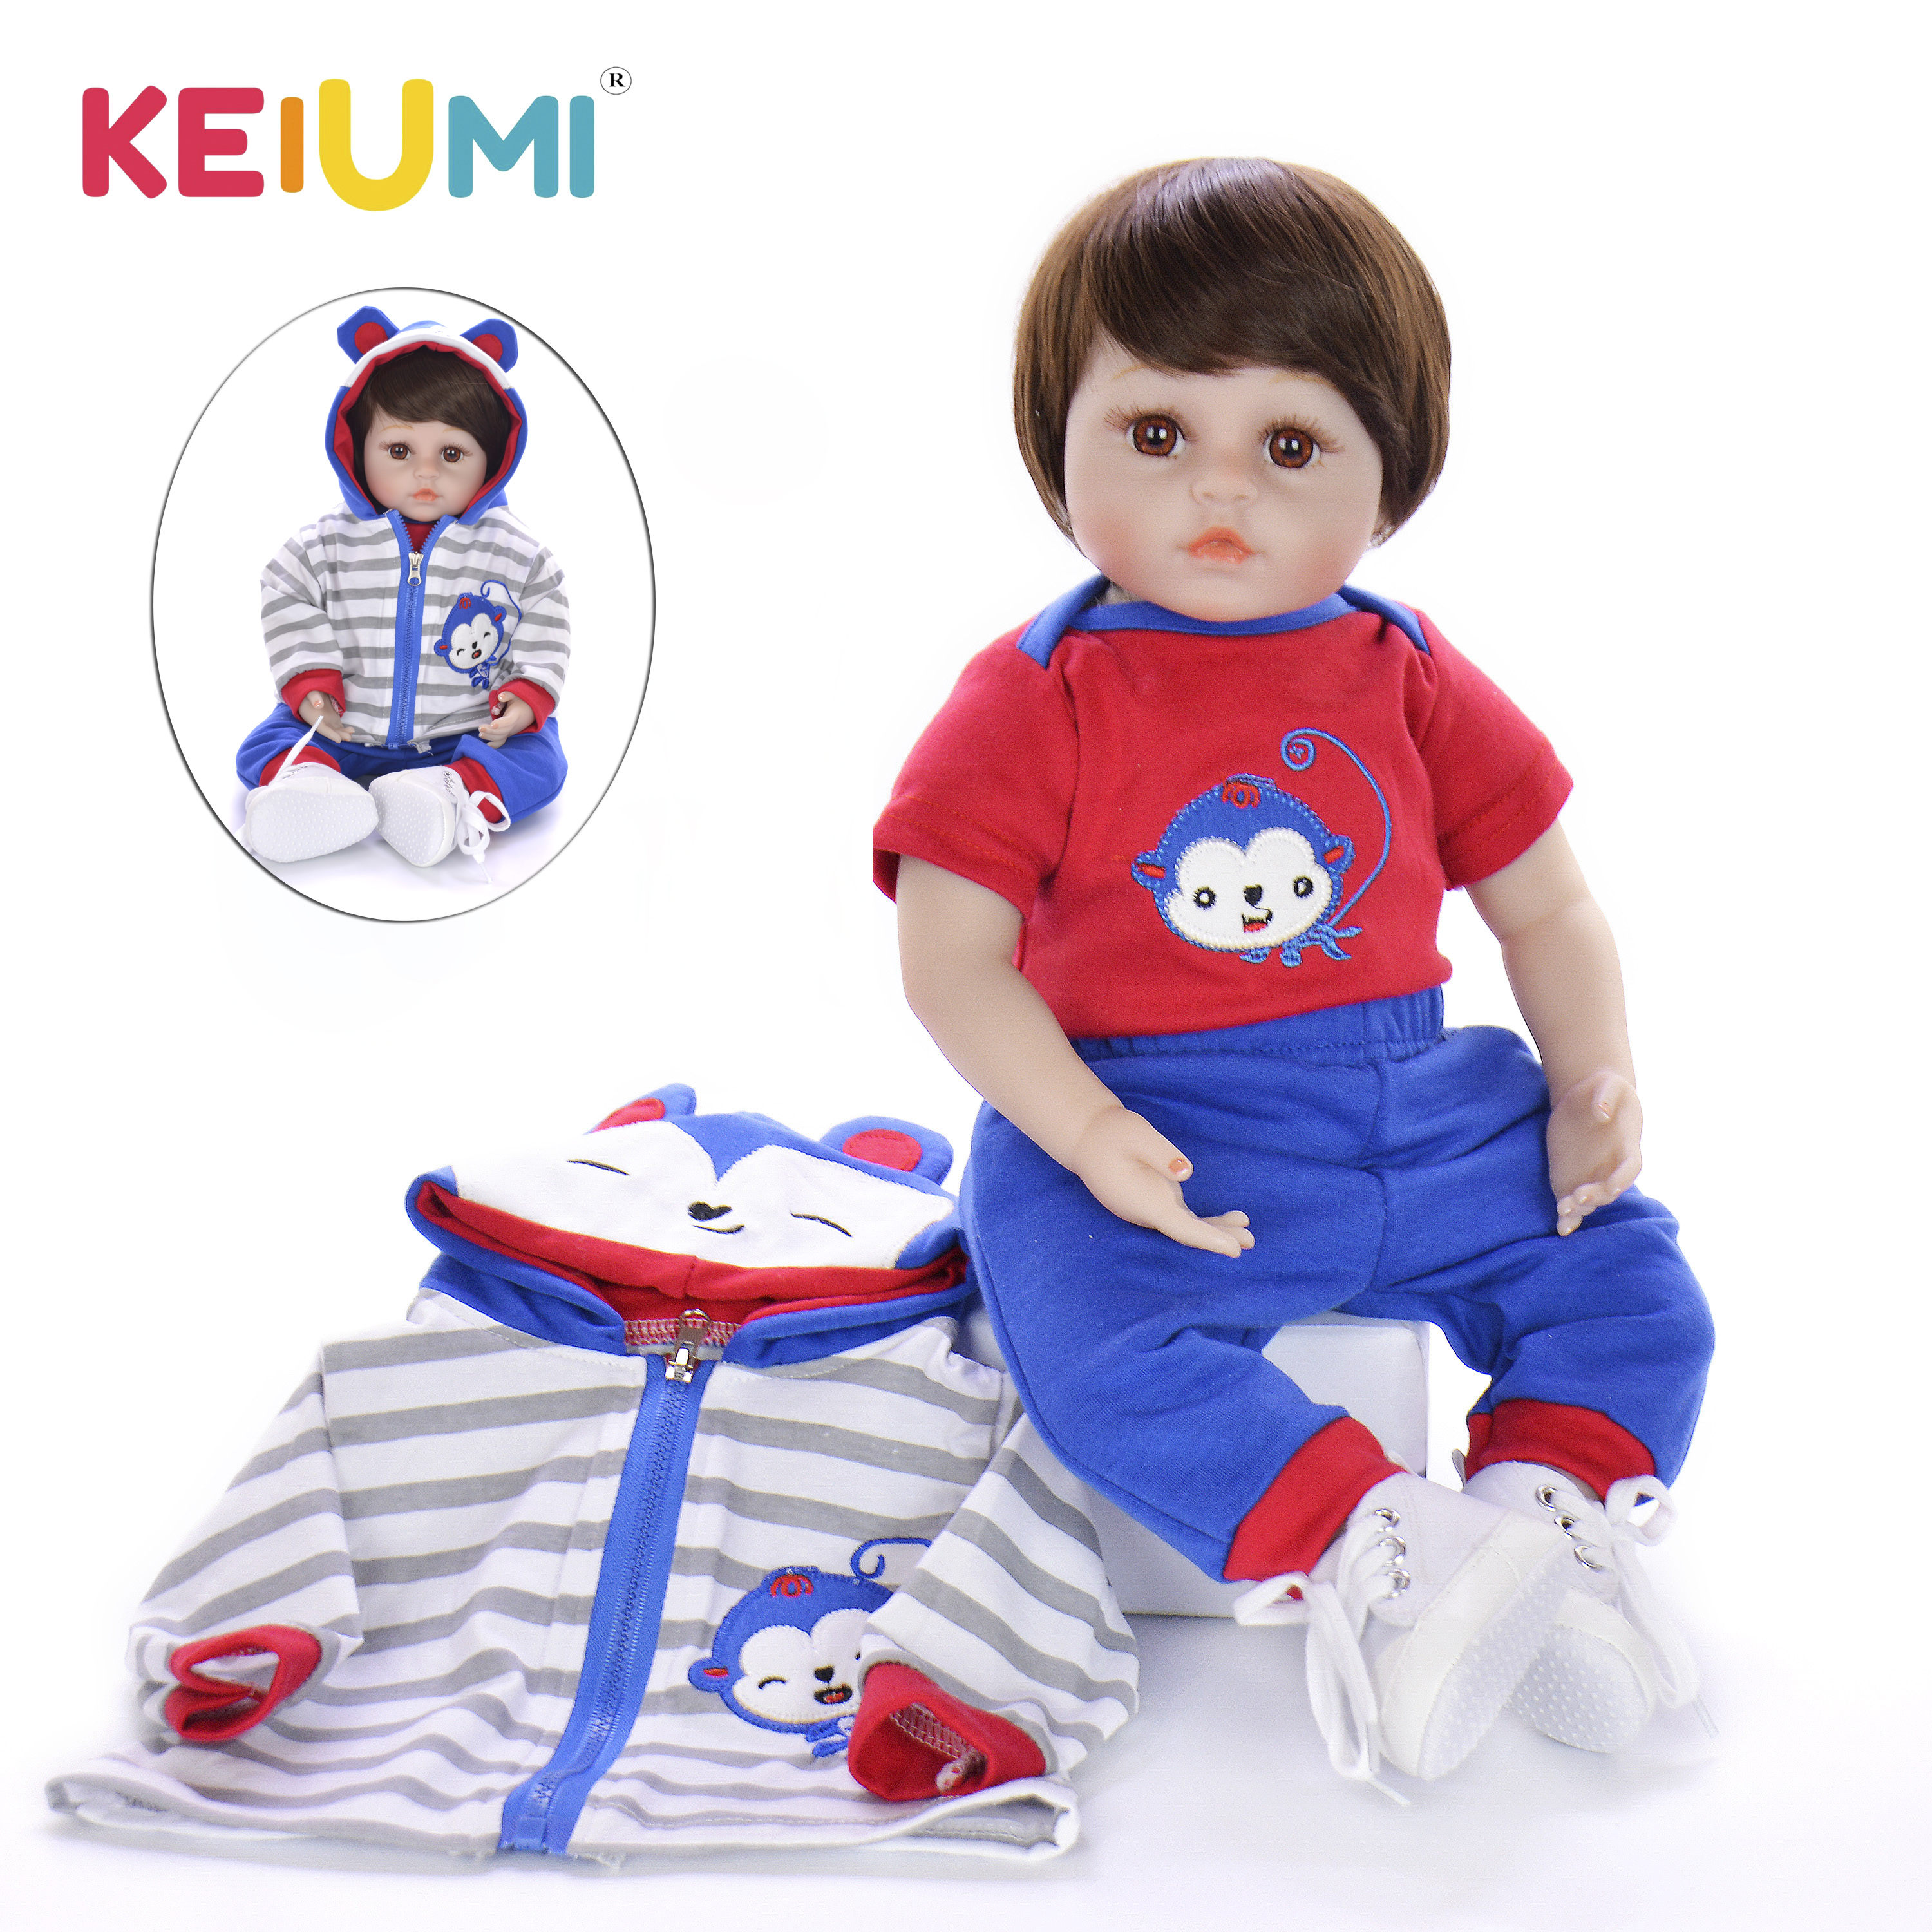 KEIUMI Adorable Reborn Baby Silicone 48 cm Realistic Stuffed Doll Reborn Boneca Touch Soft Little Man For Boy Kids Playmate GiftKEIUMI Adorable Reborn Baby Silicone 48 cm Realistic Stuffed Doll Reborn Boneca Touch Soft Little Man For Boy Kids Playmate Gift